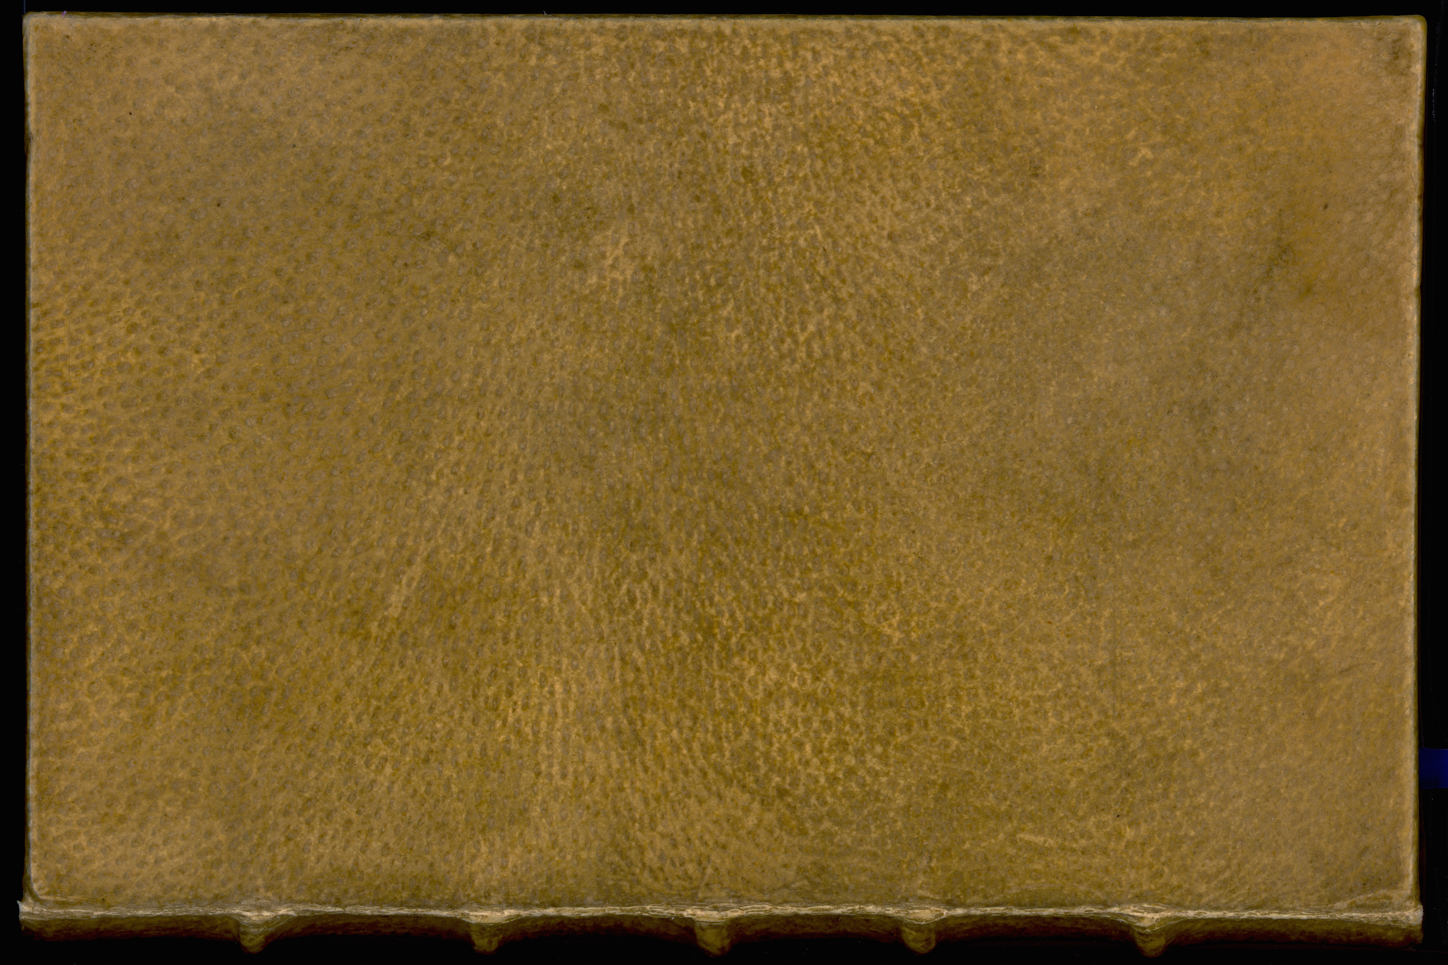 Harvard confirms century-old book is covered in human skin